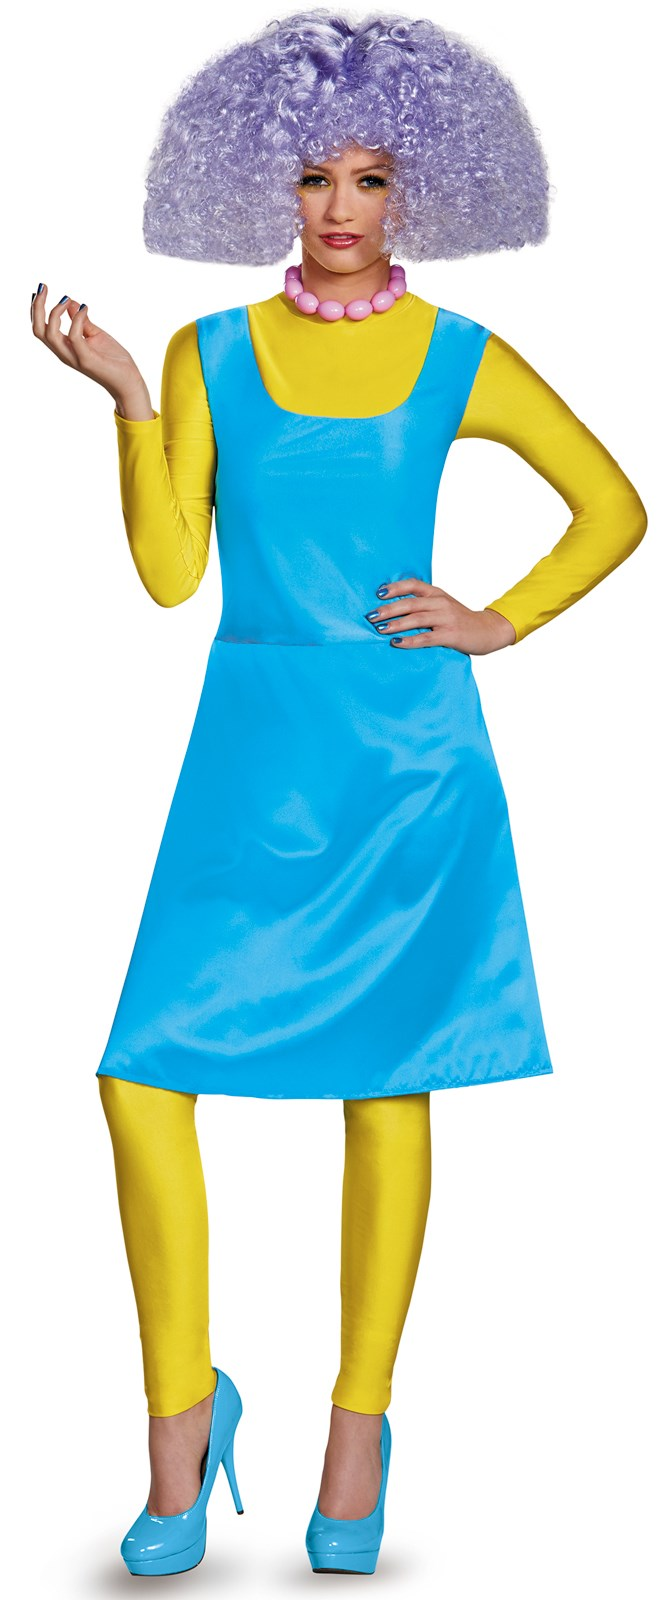 The Simpsons: Deluxe Selma Costume For Adults